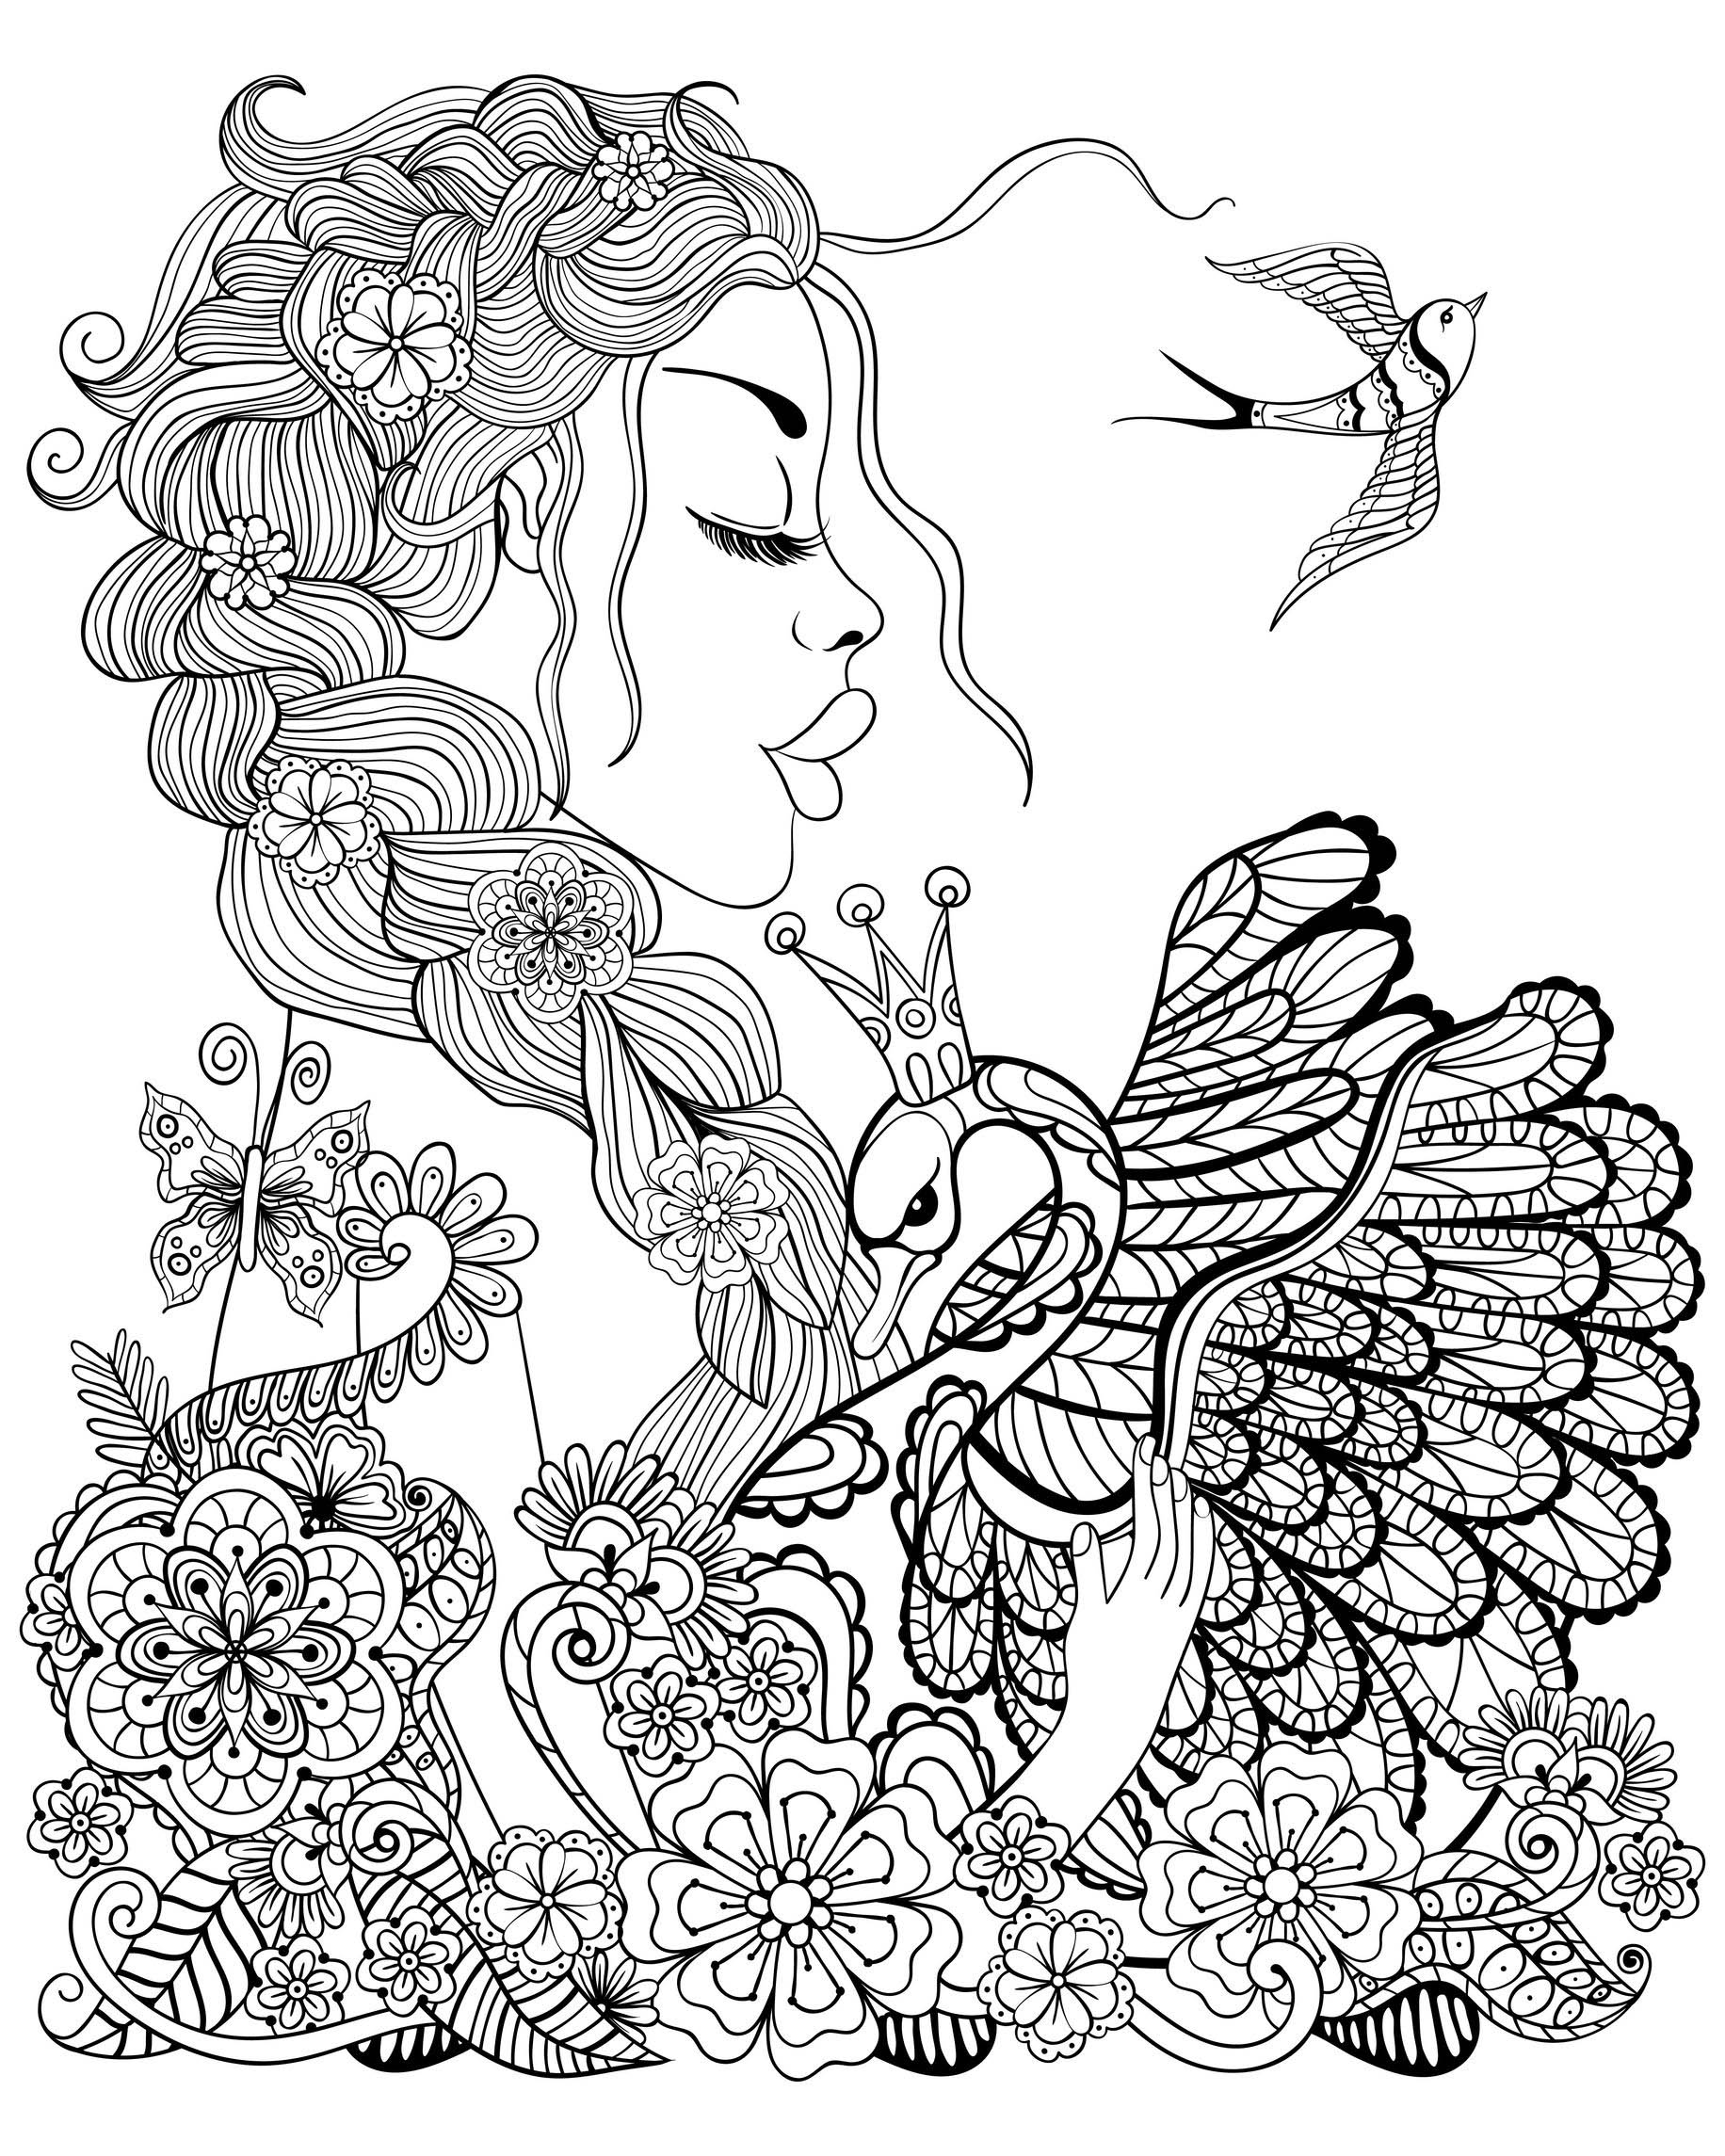 coloring websites construction coloring pages coloring pages to download coloring websites